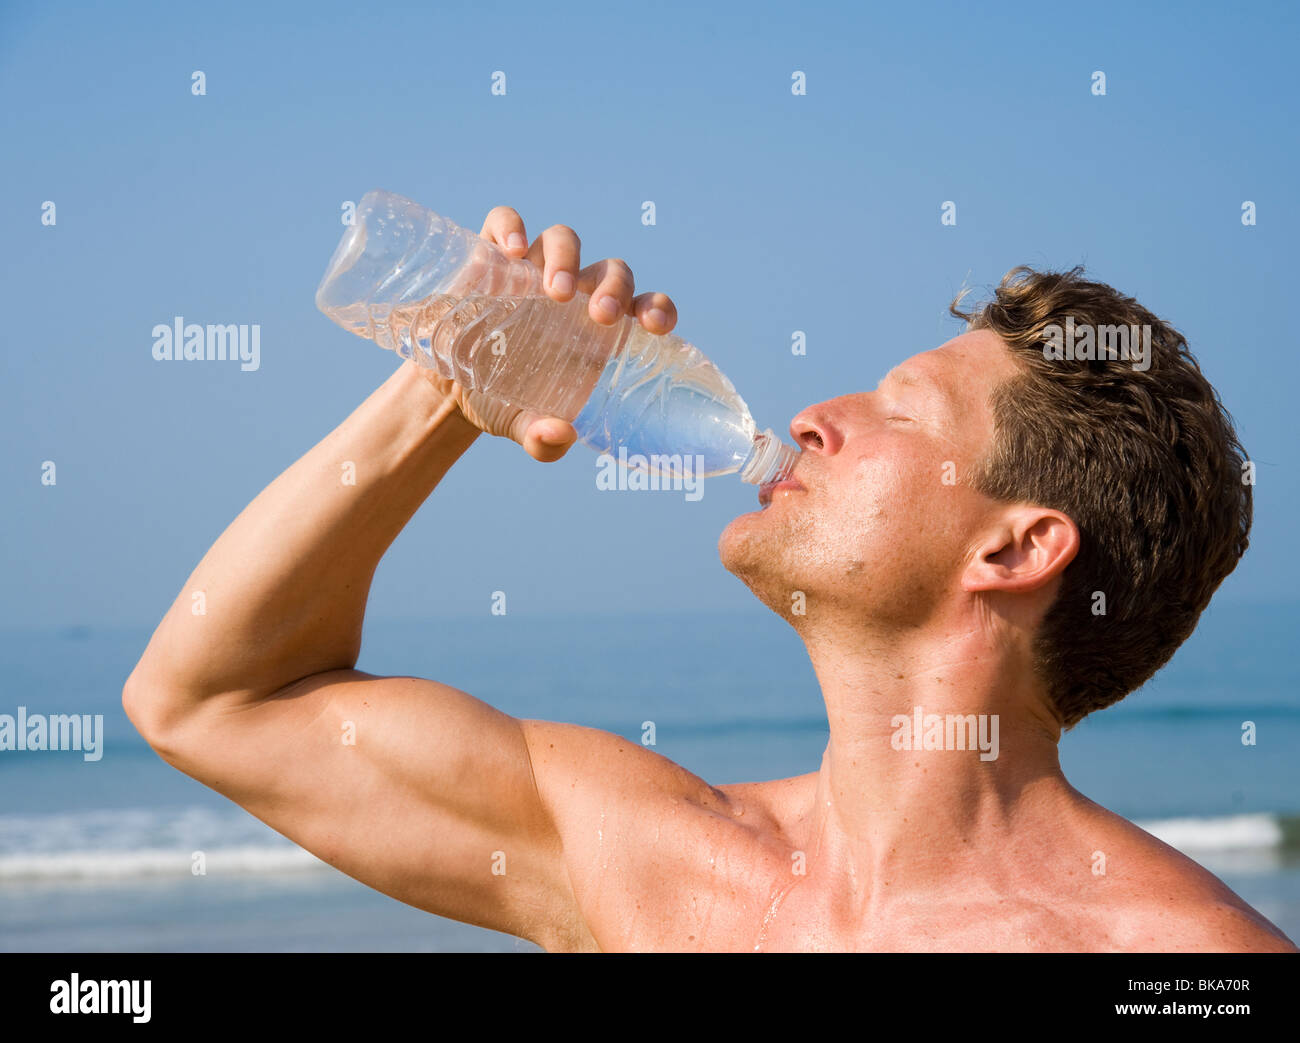 A man drinking bottled water on a beach - Stock Image